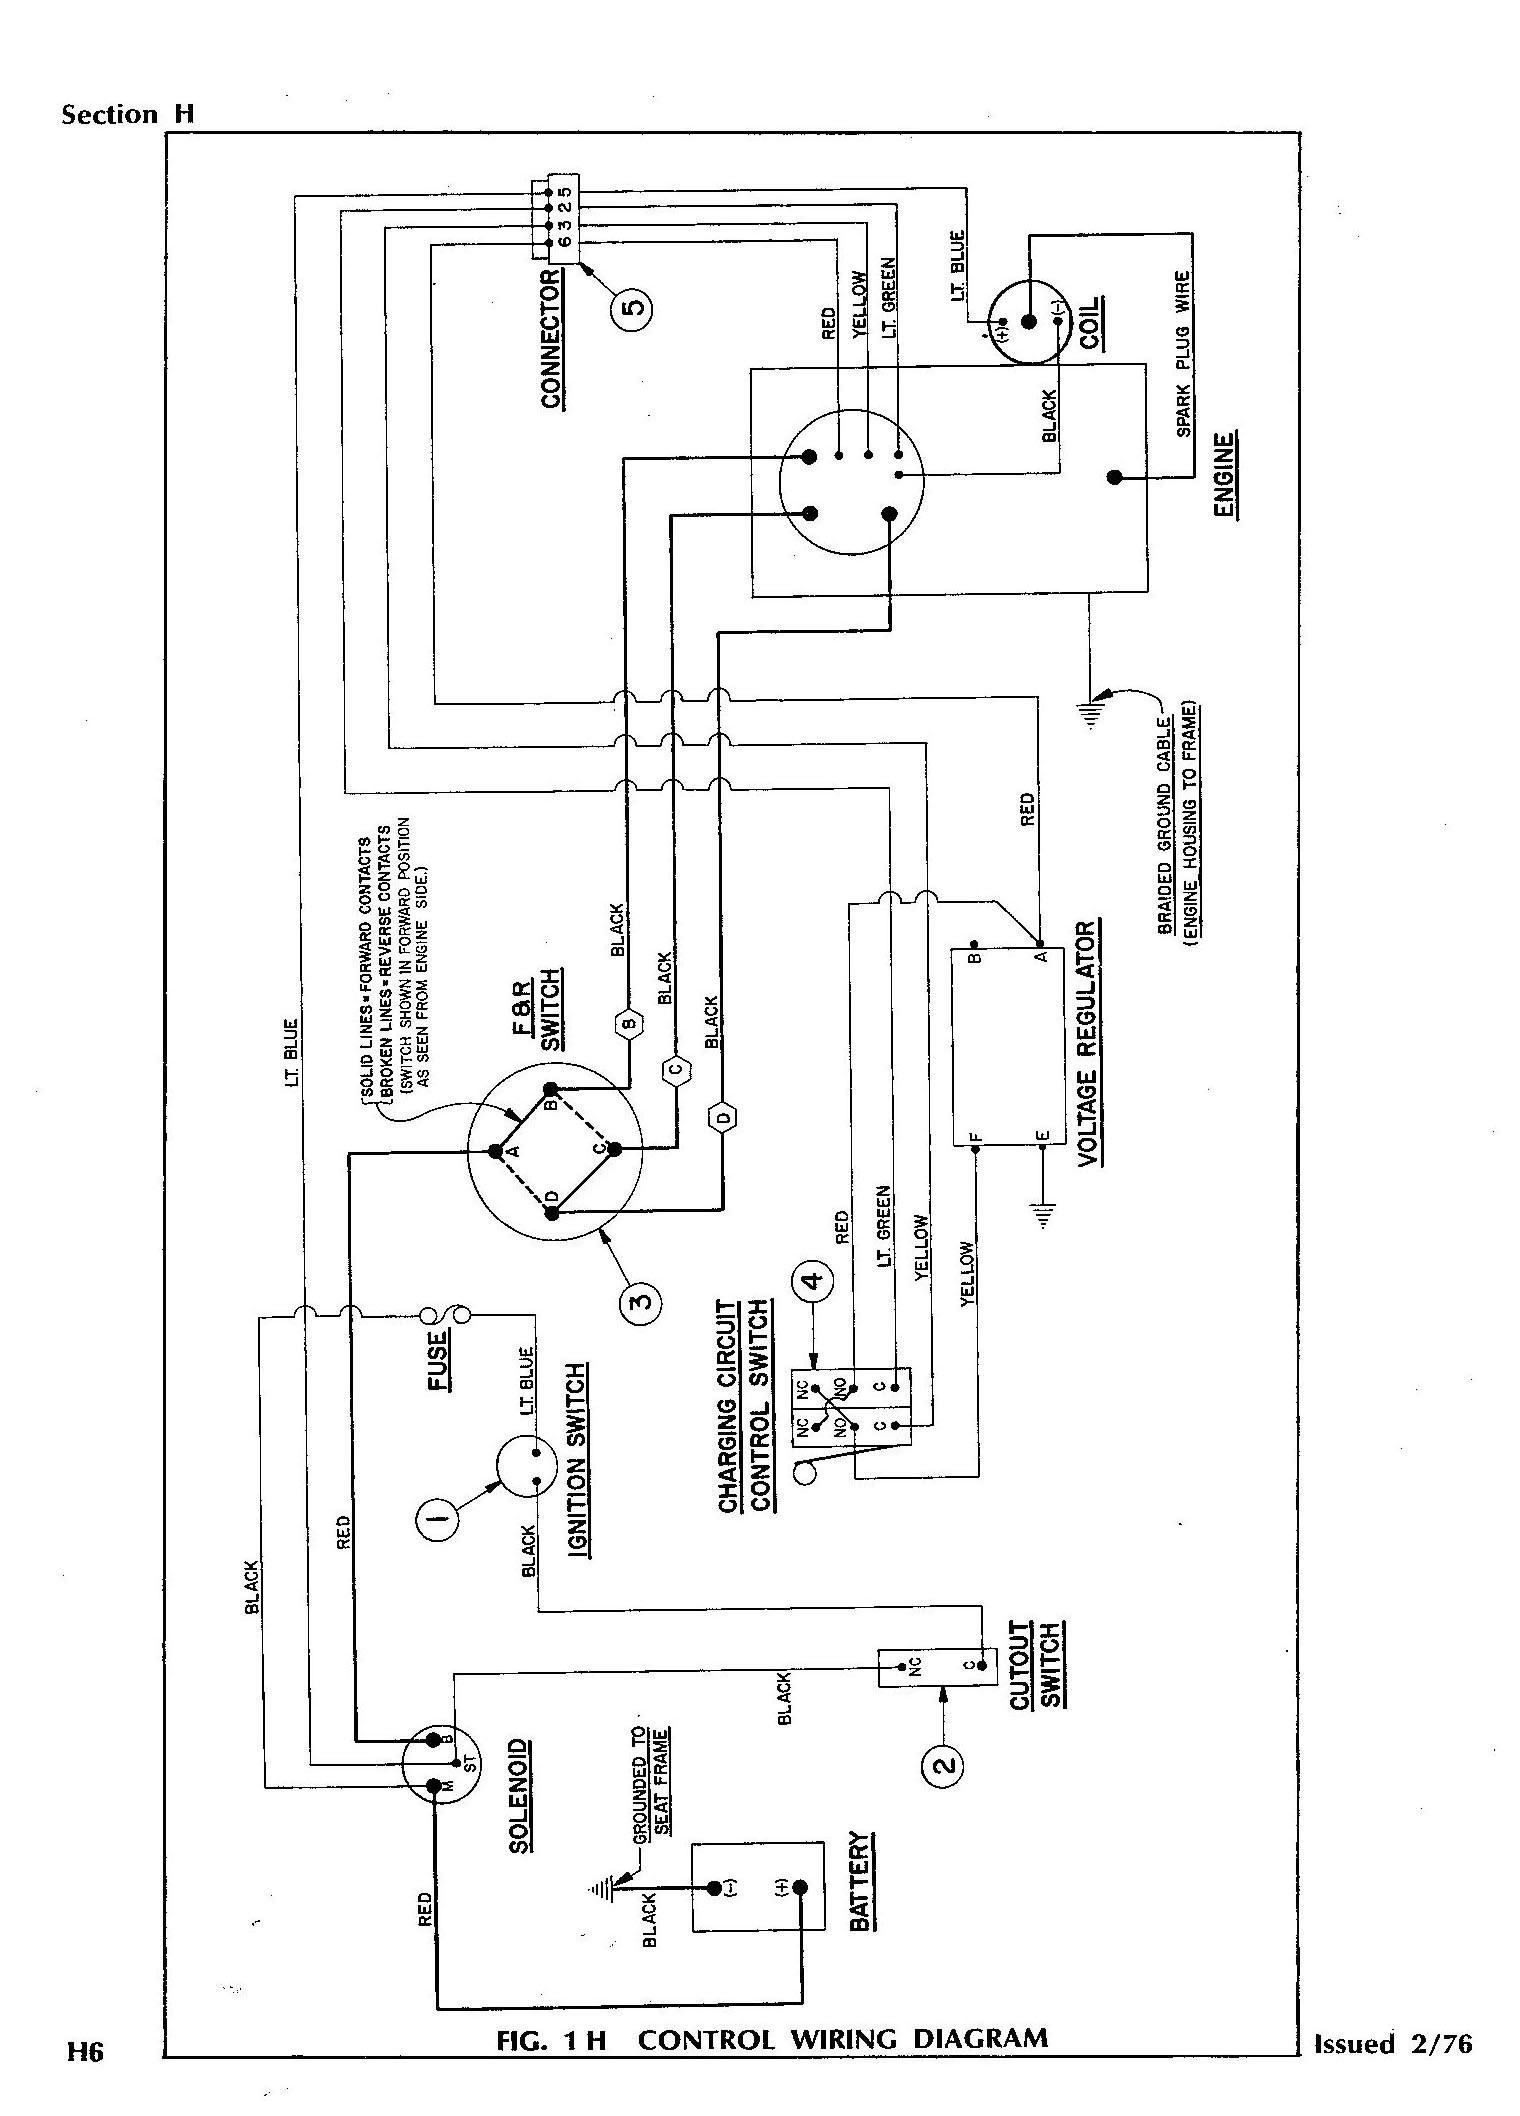 [TBQL_4184]  DIAGRAM] Wiring Diagram For 2002 Ezgo Gas Golf Cart FULL Version HD Quality Golf  Cart - DIAGRAMSYS.UNICEFFLAUBERT.FR | 1992 Ezgo Gas Wiring Diagram |  | Diagram Database